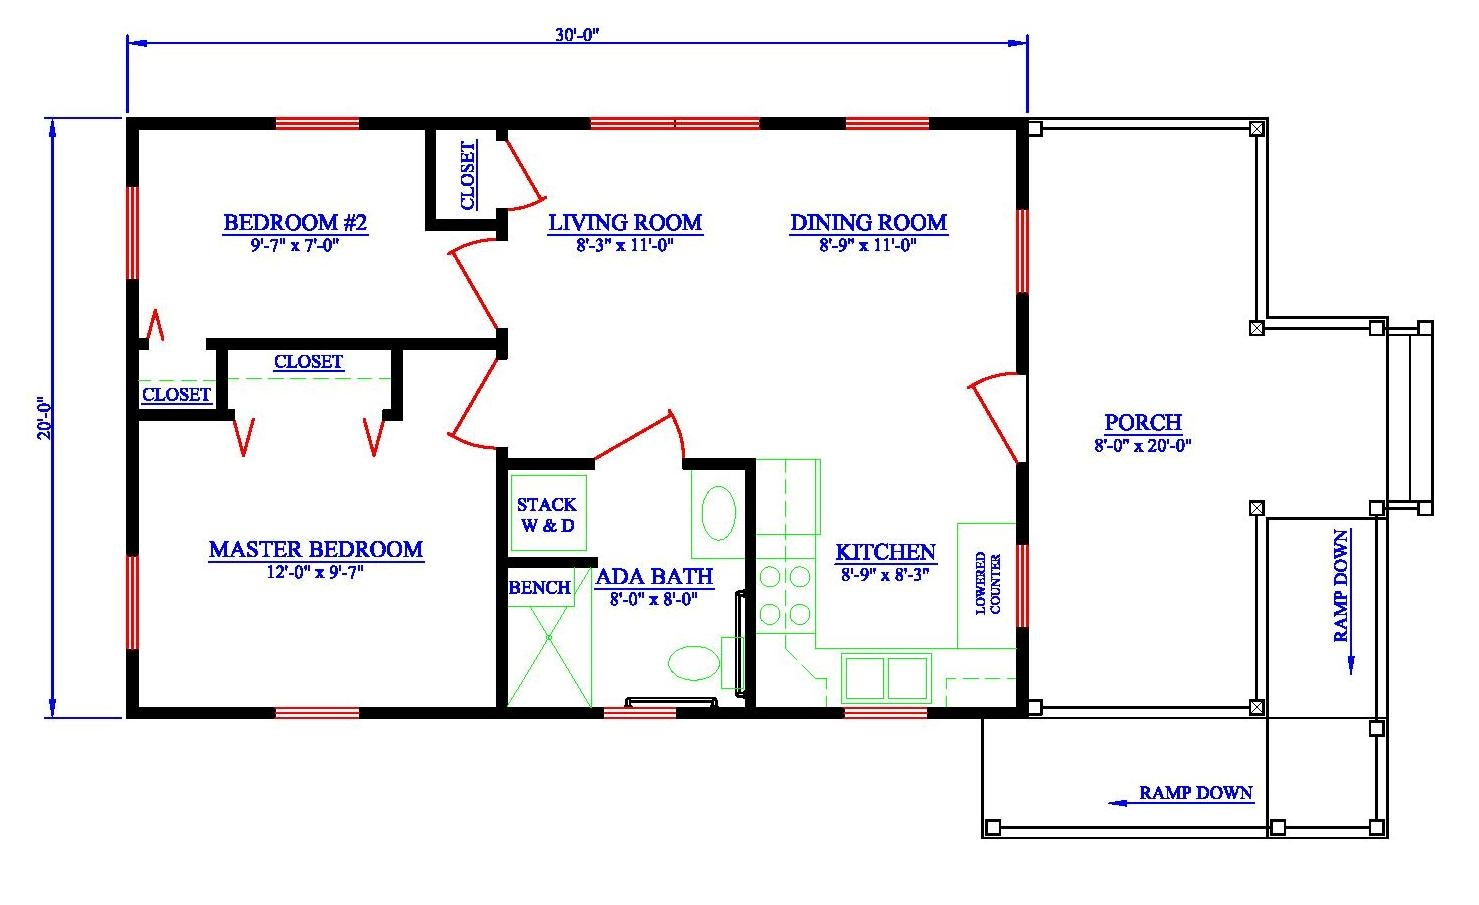 House plans handicap accessible house plan 2017 for Small wheelchair accessible house plans